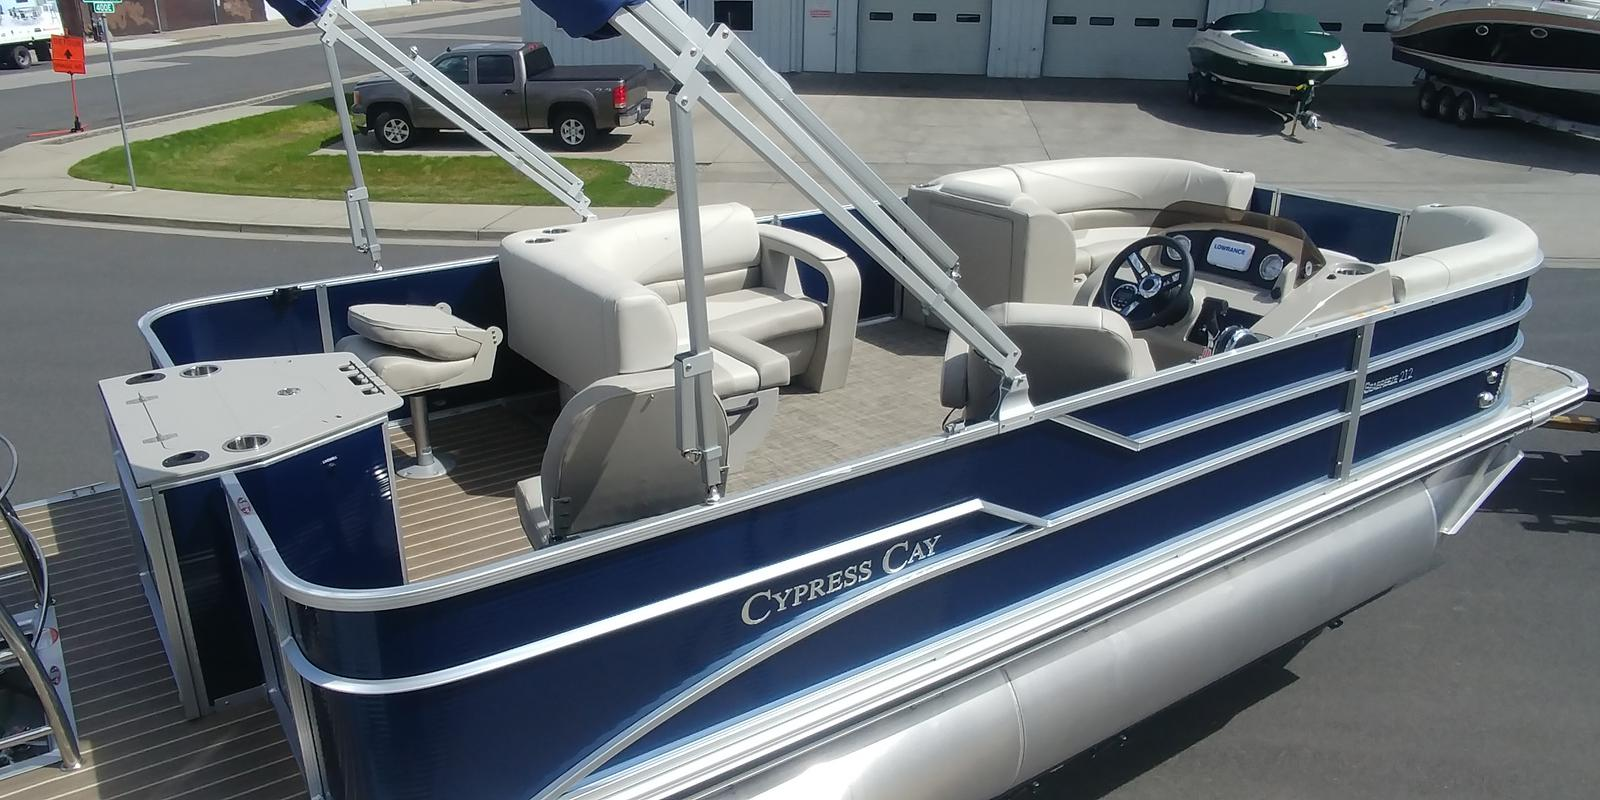 2019 Cypress Cay boat for sale, model of the boat is 212 Seabreeze FC & Image # 2 of 5